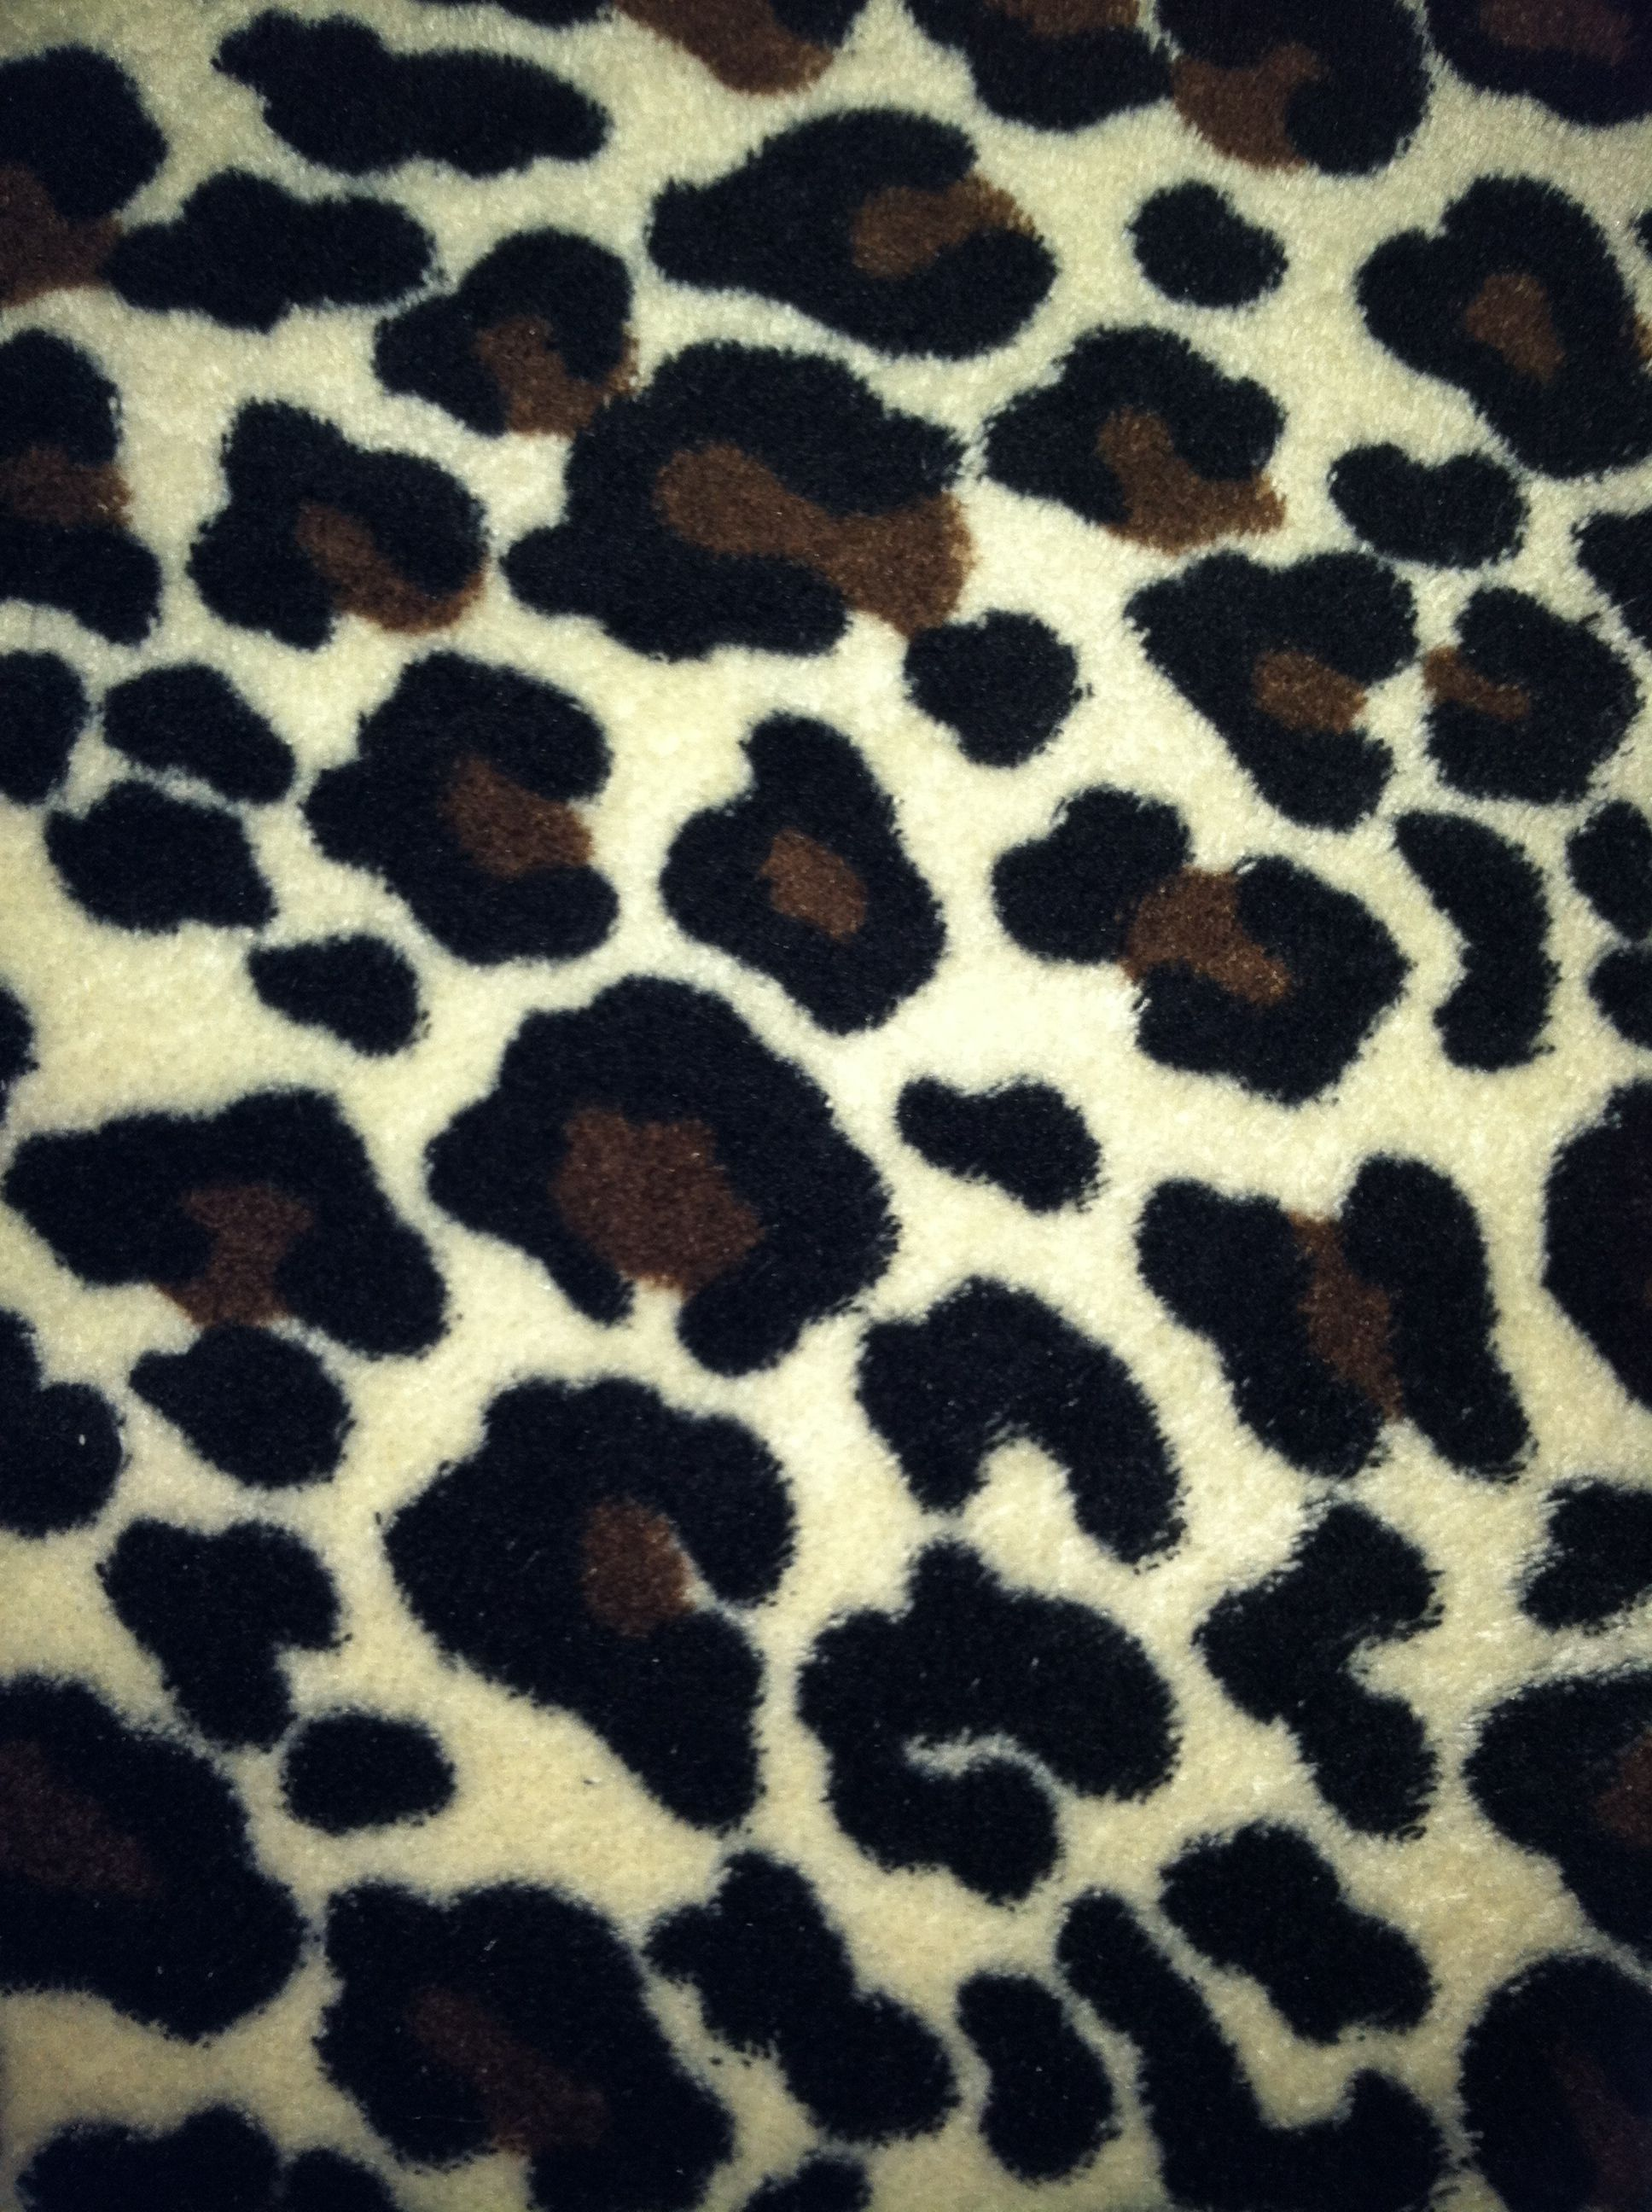 Cheetah Blanket Photography Cheetah Bedding Fabric